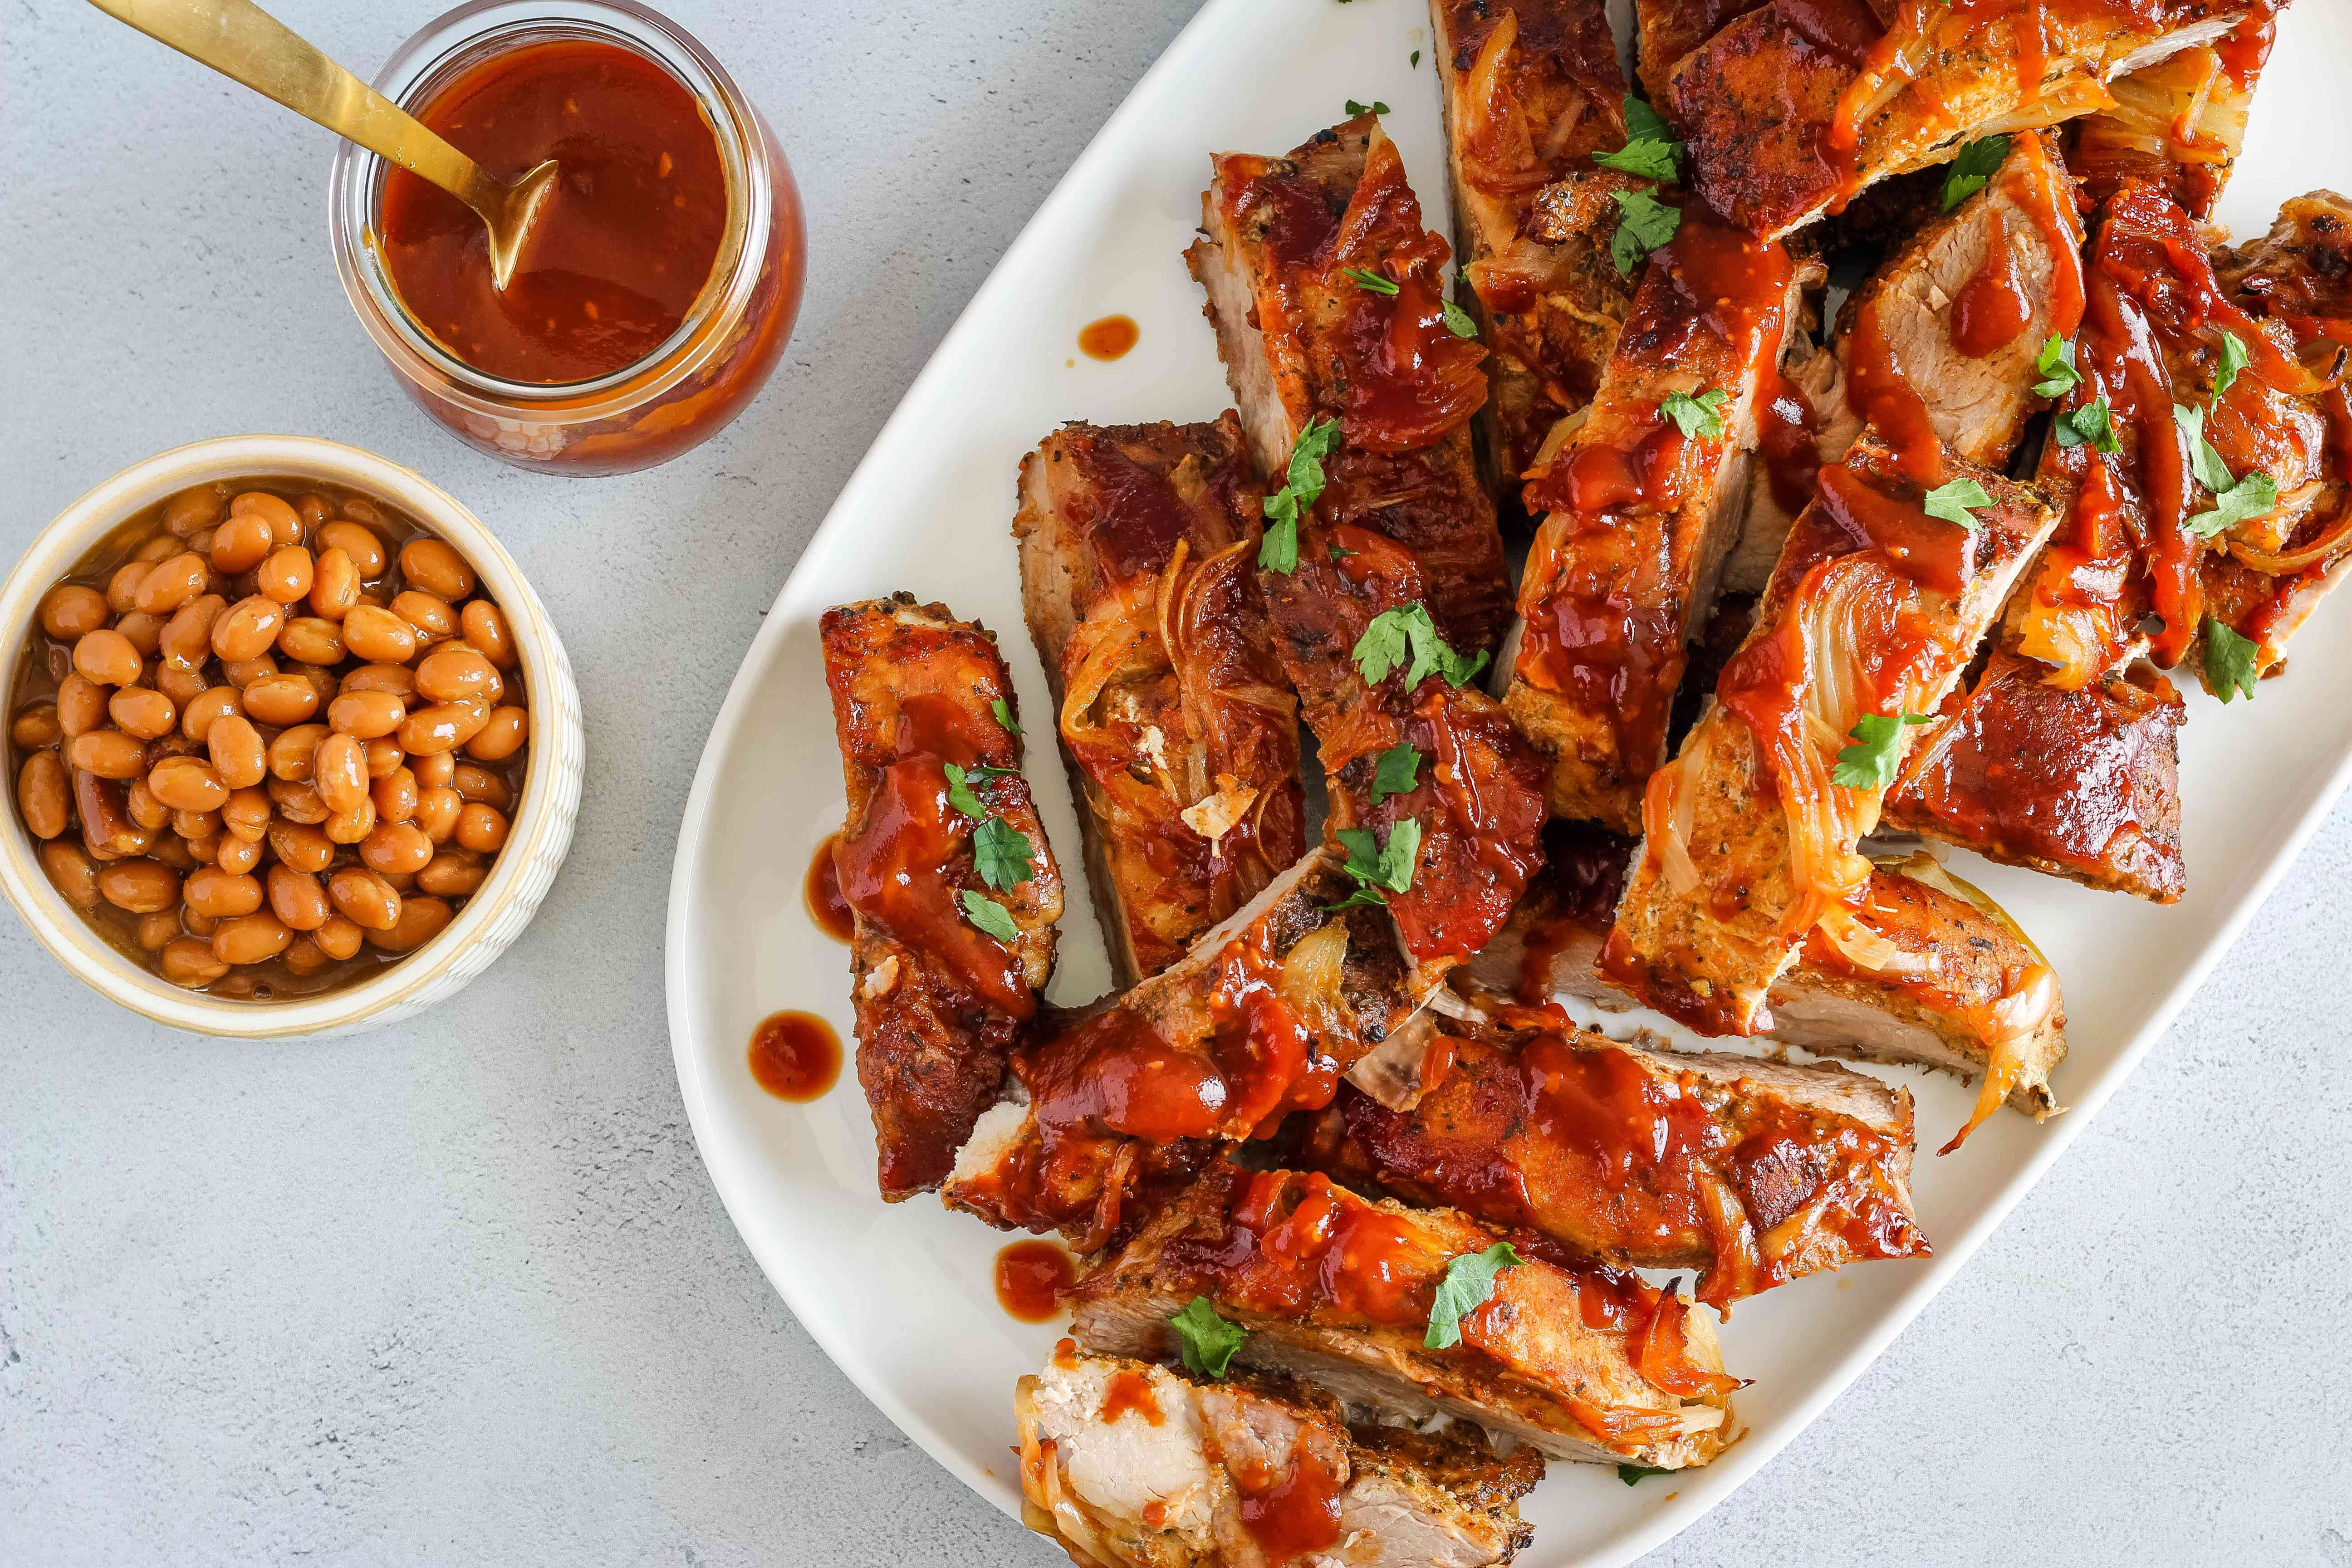 Easy baked barbecued country style ribs recipe